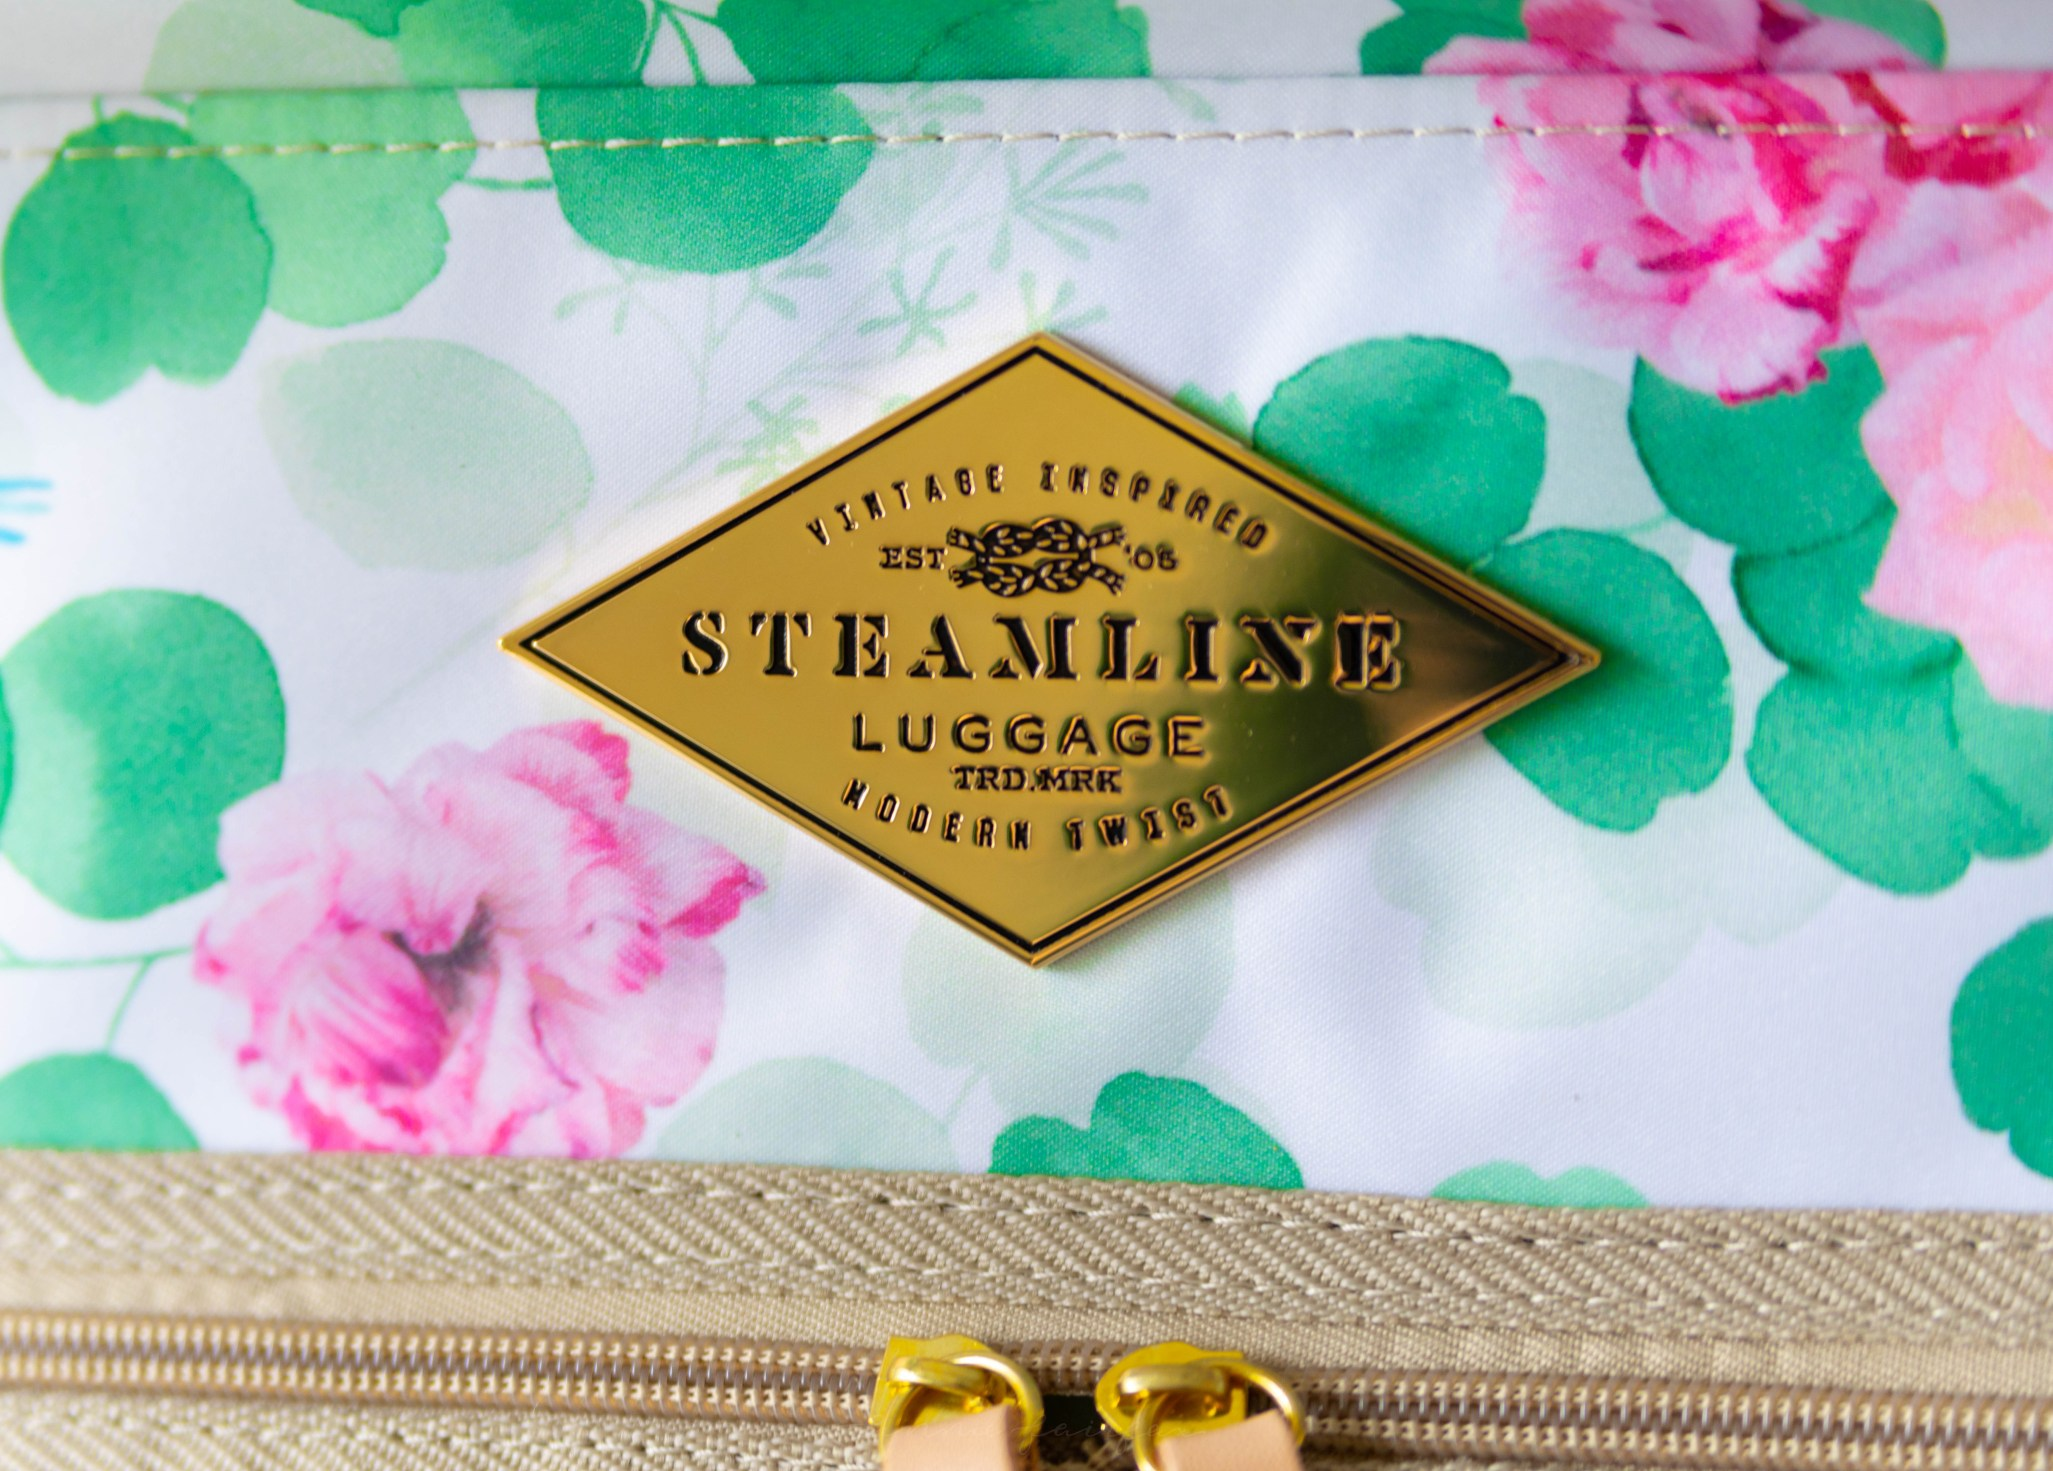 Steamline Luggage Review and Packing List for Travelers, Long Vacations, Carry-ons, and Weekend Getaway